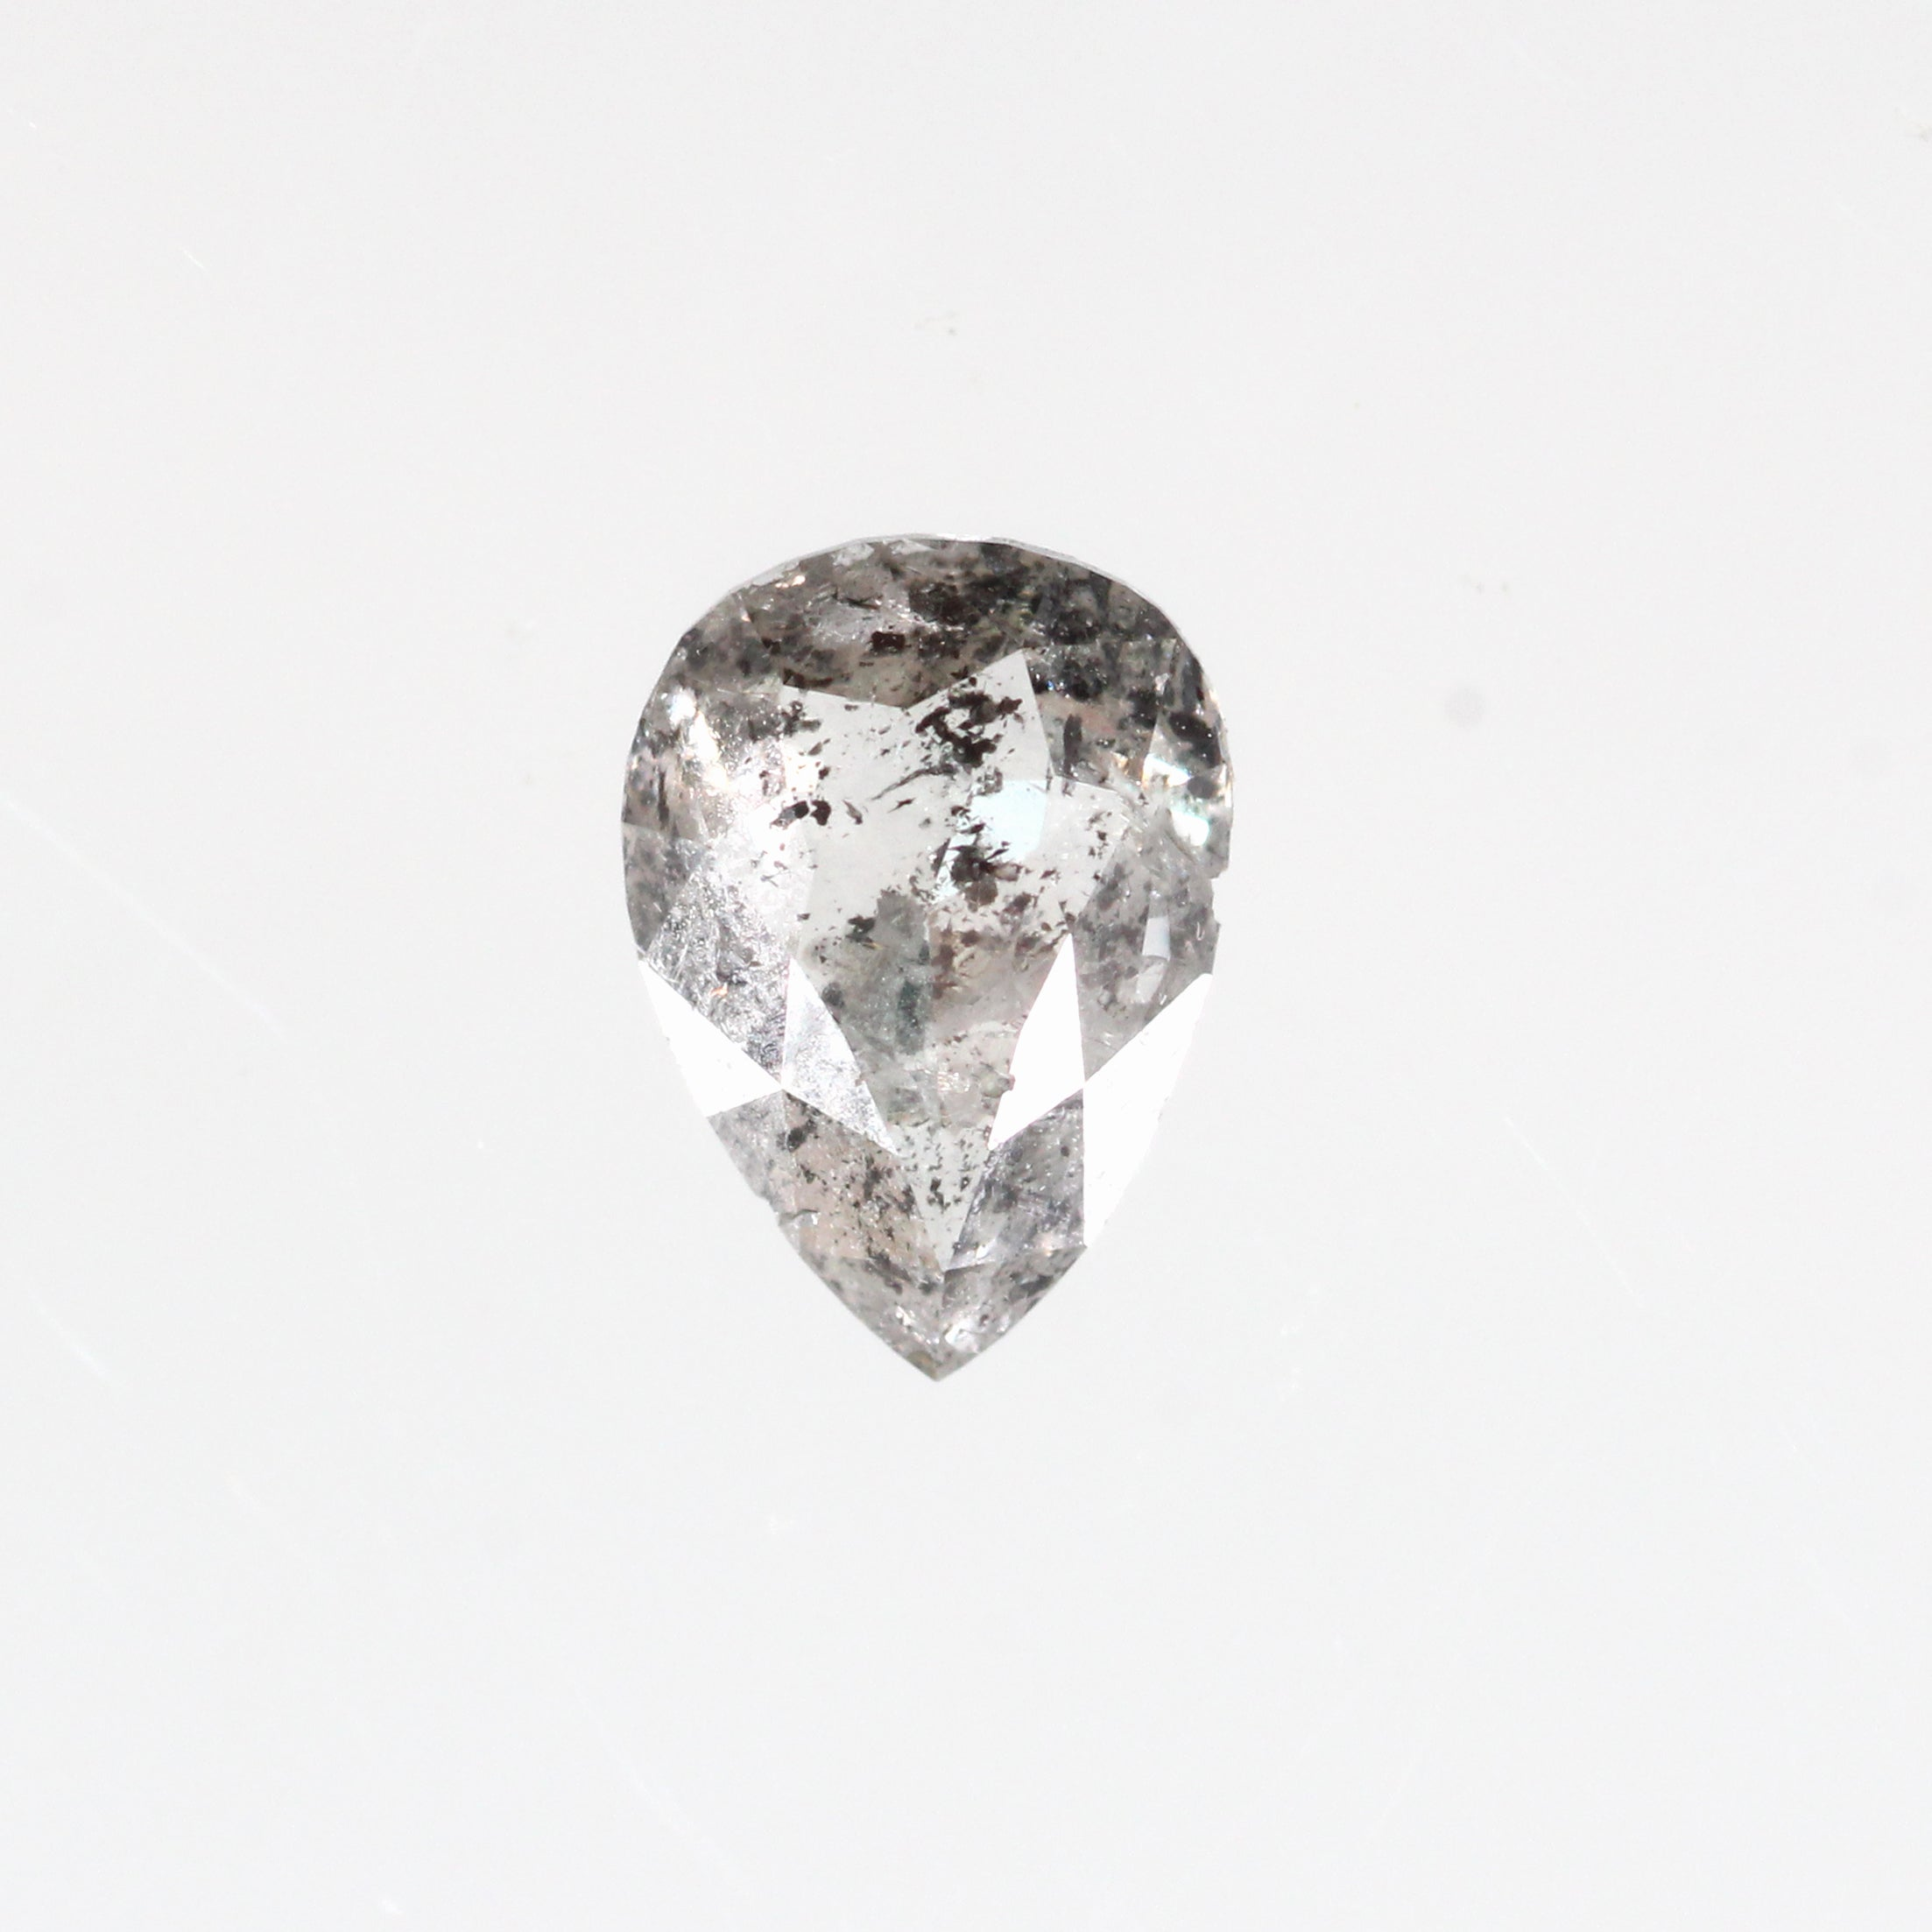 8mm .96 carat Celestial Pear Diamond for Custom Work - Inventory Code RCP96